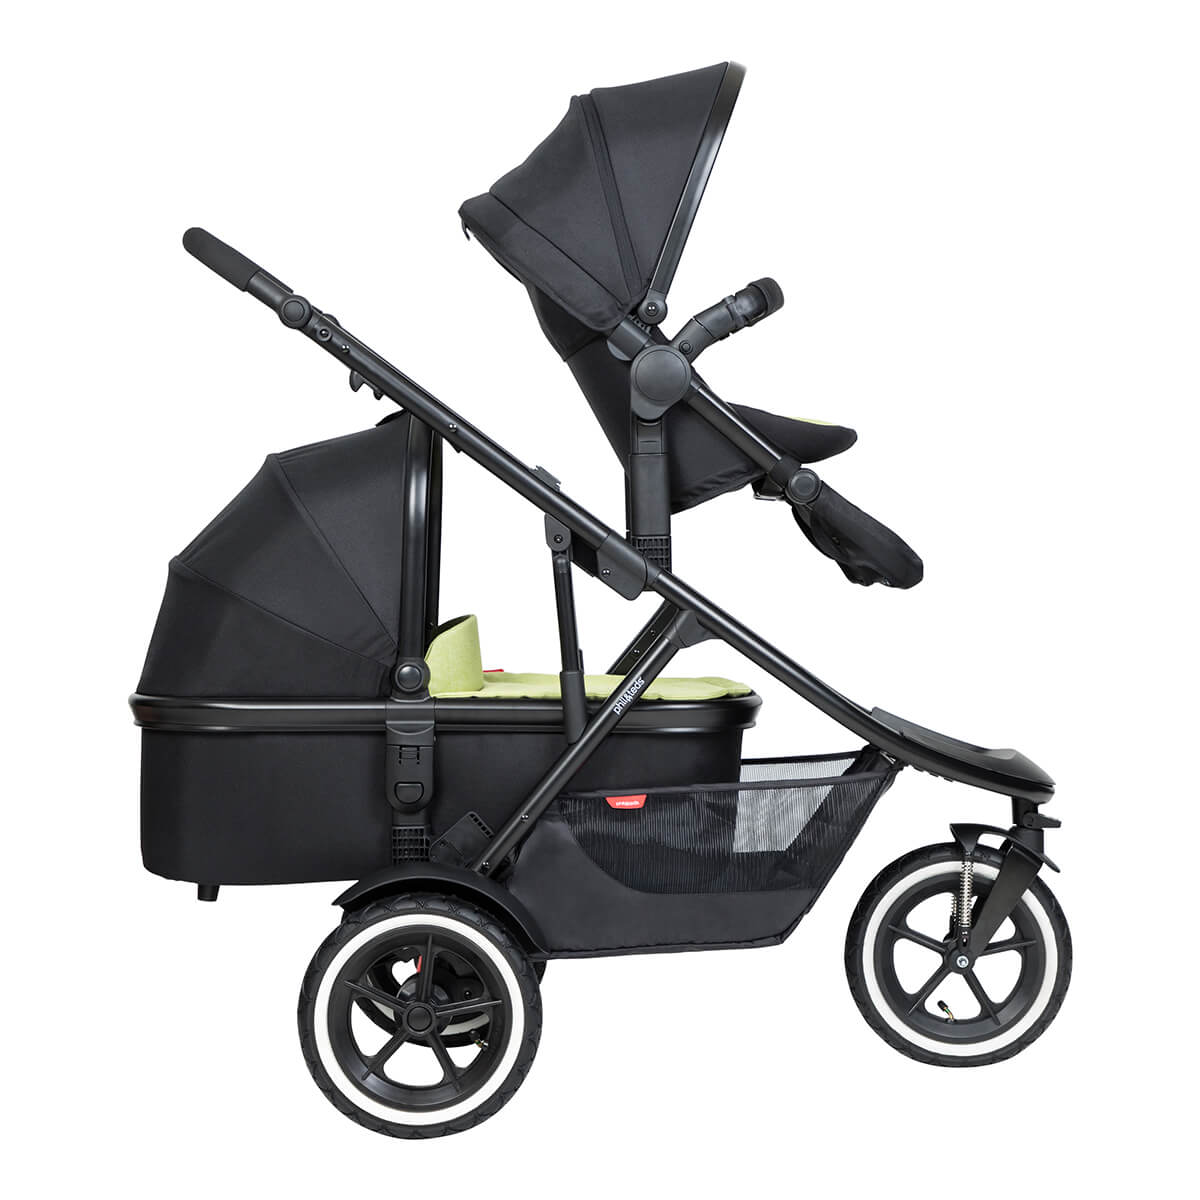 https://cdn.accentuate.io/4467127091253/19118870659125/philteds-sport-buggy-with-double-kit-extended-clip-and-snug-carrycot-side-view-v1626403835135.jpg?1200x1200